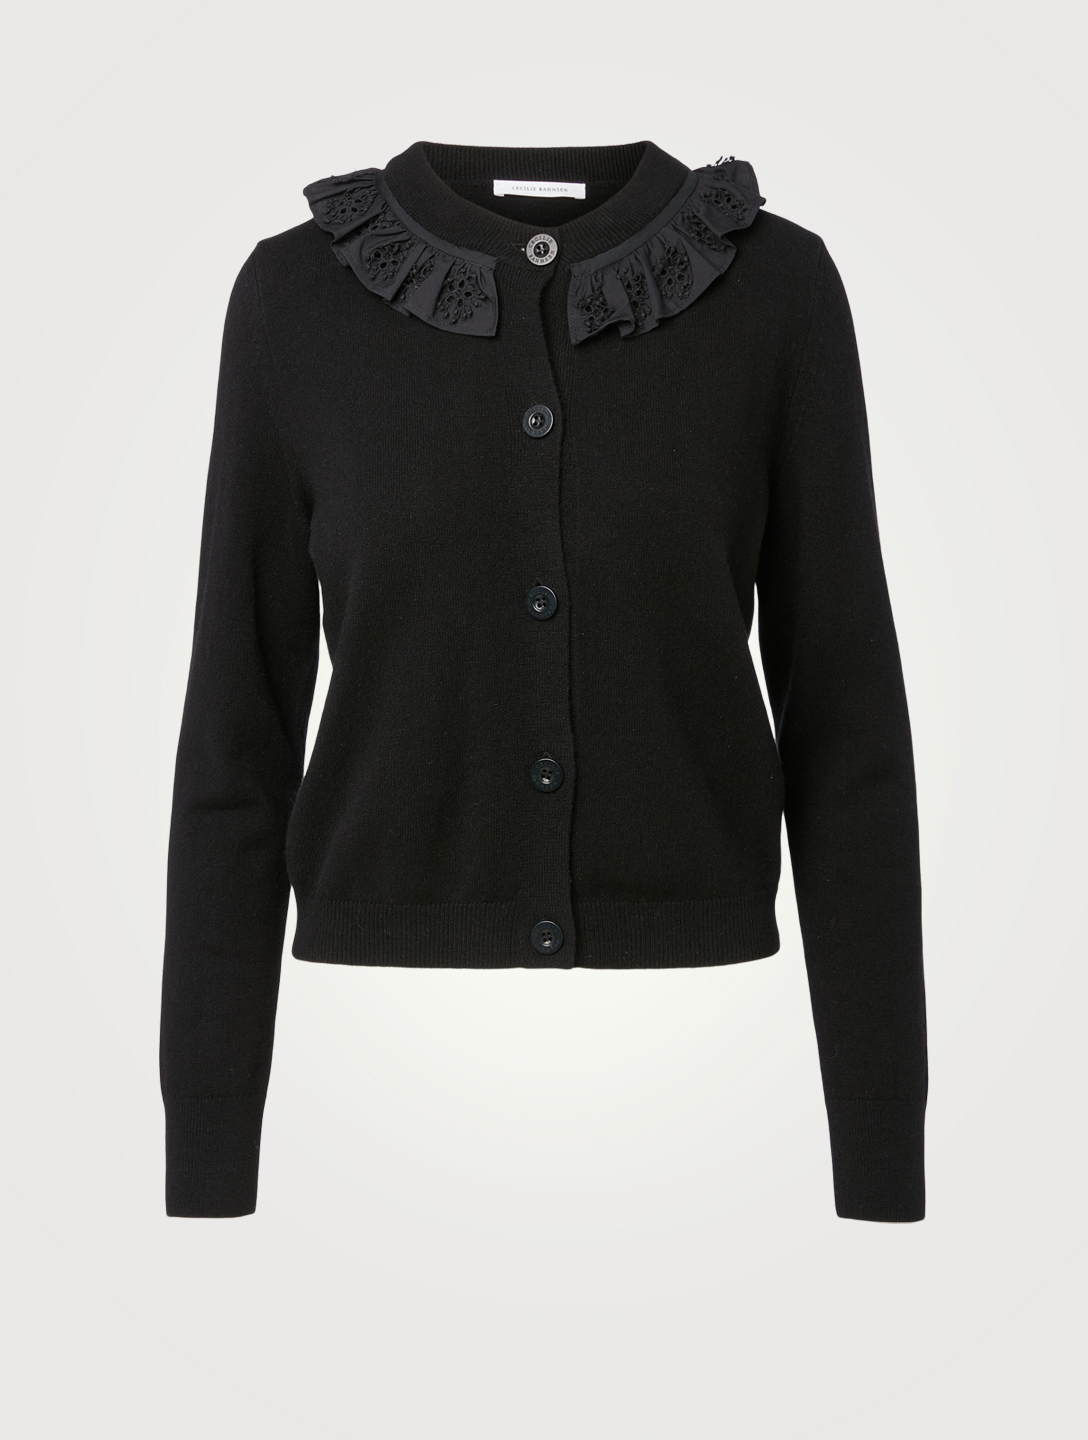 CECILIE BAHNSEN Farrah Cashmere And Wool Cardigan Women's Black